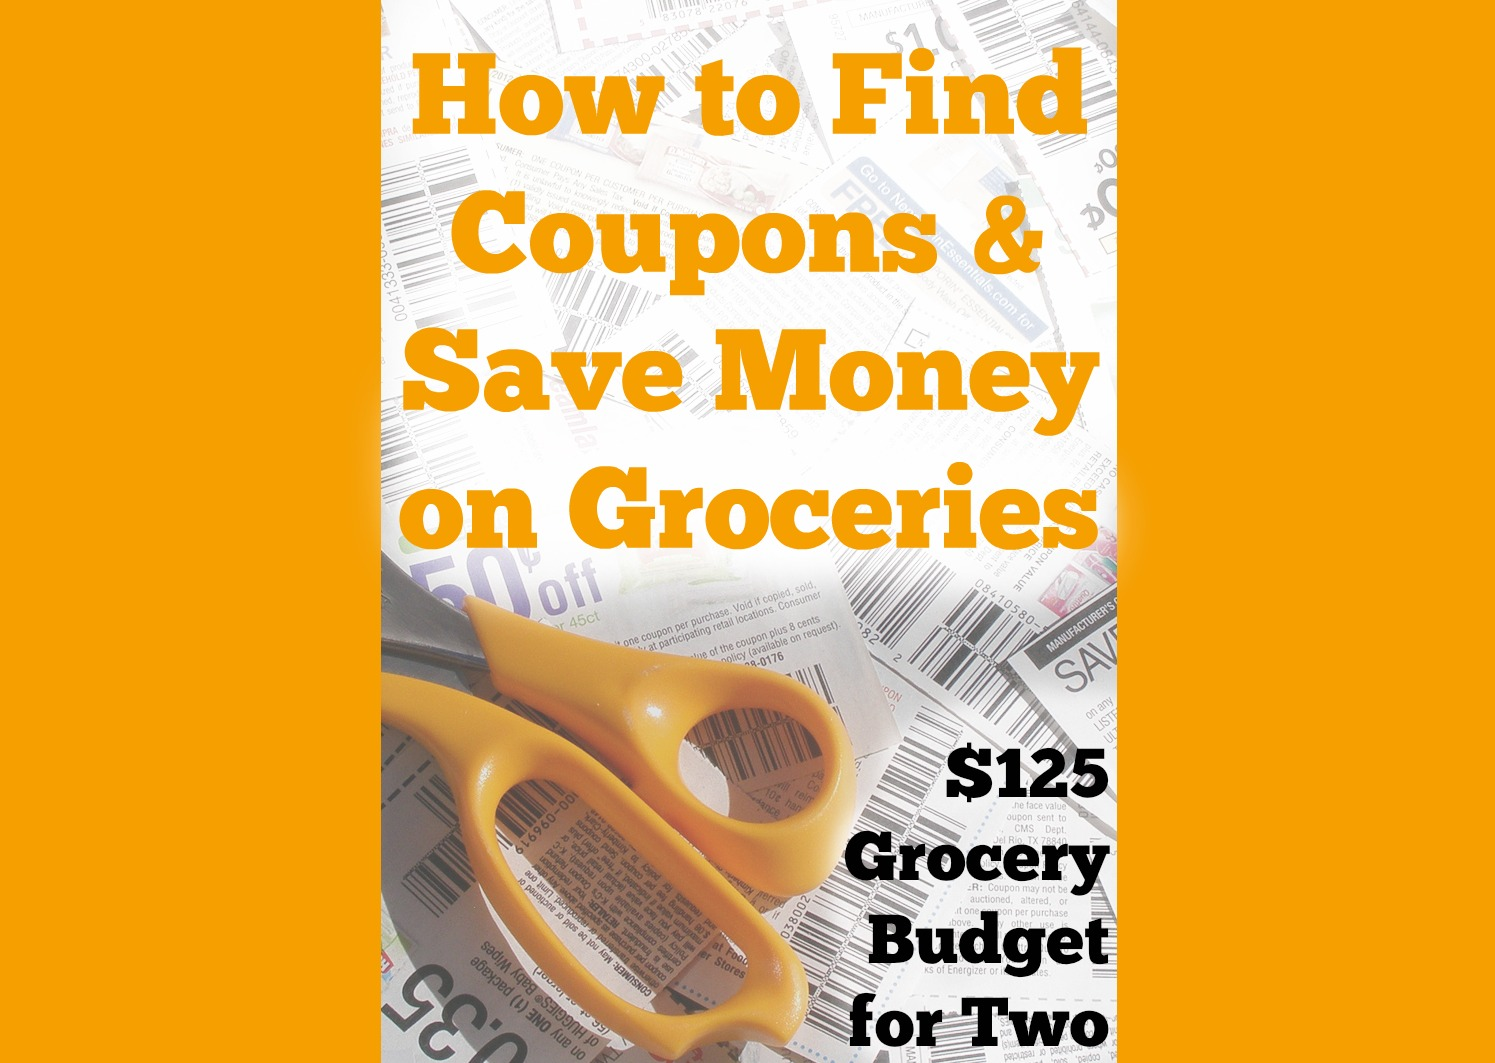 Order Fresh Groceries Online & Enjoy The Same In-Store Savings With Free Pickup!